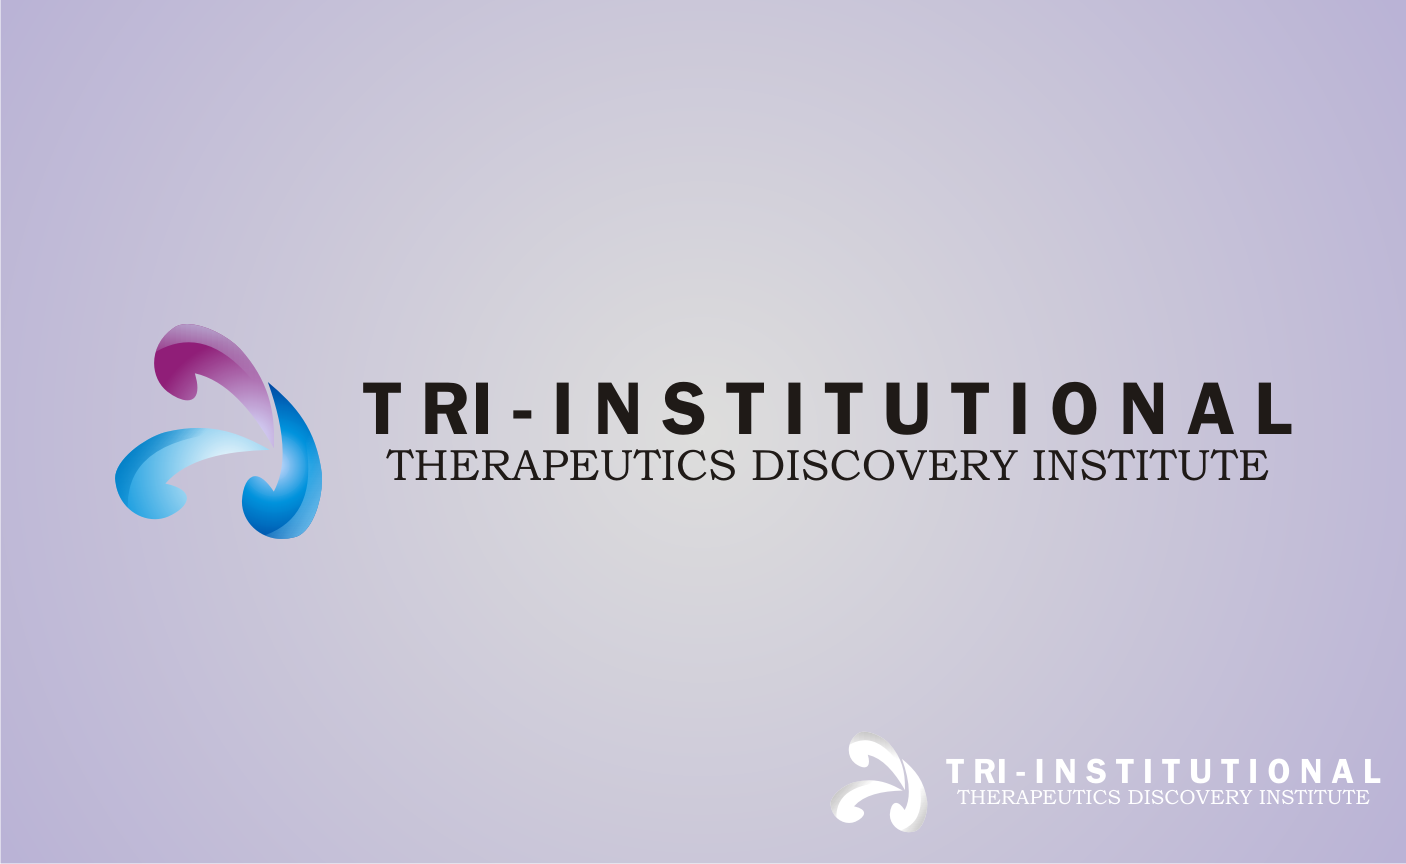 Logo Design by Nthus Nthis - Entry No. 204 in the Logo Design Contest Inspiring Logo Design for Tri-Institutional Therapeutics Discovery Institute.